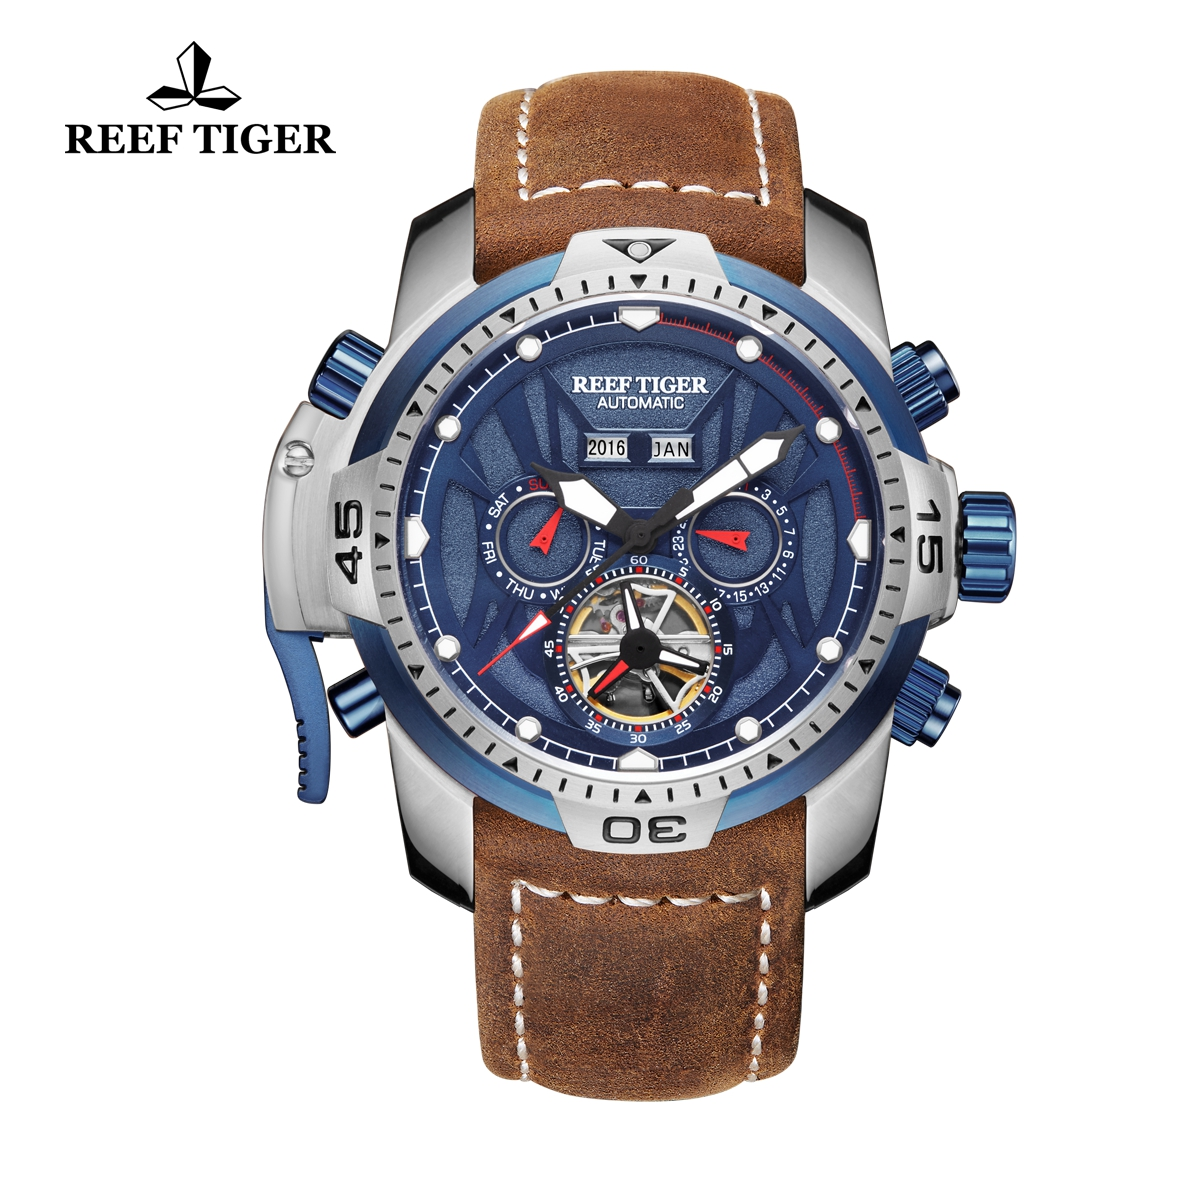 Reef Tiger Transformer Sport Watches Complicated Brown Leather Watch Steel Case RGA3532-YLSR